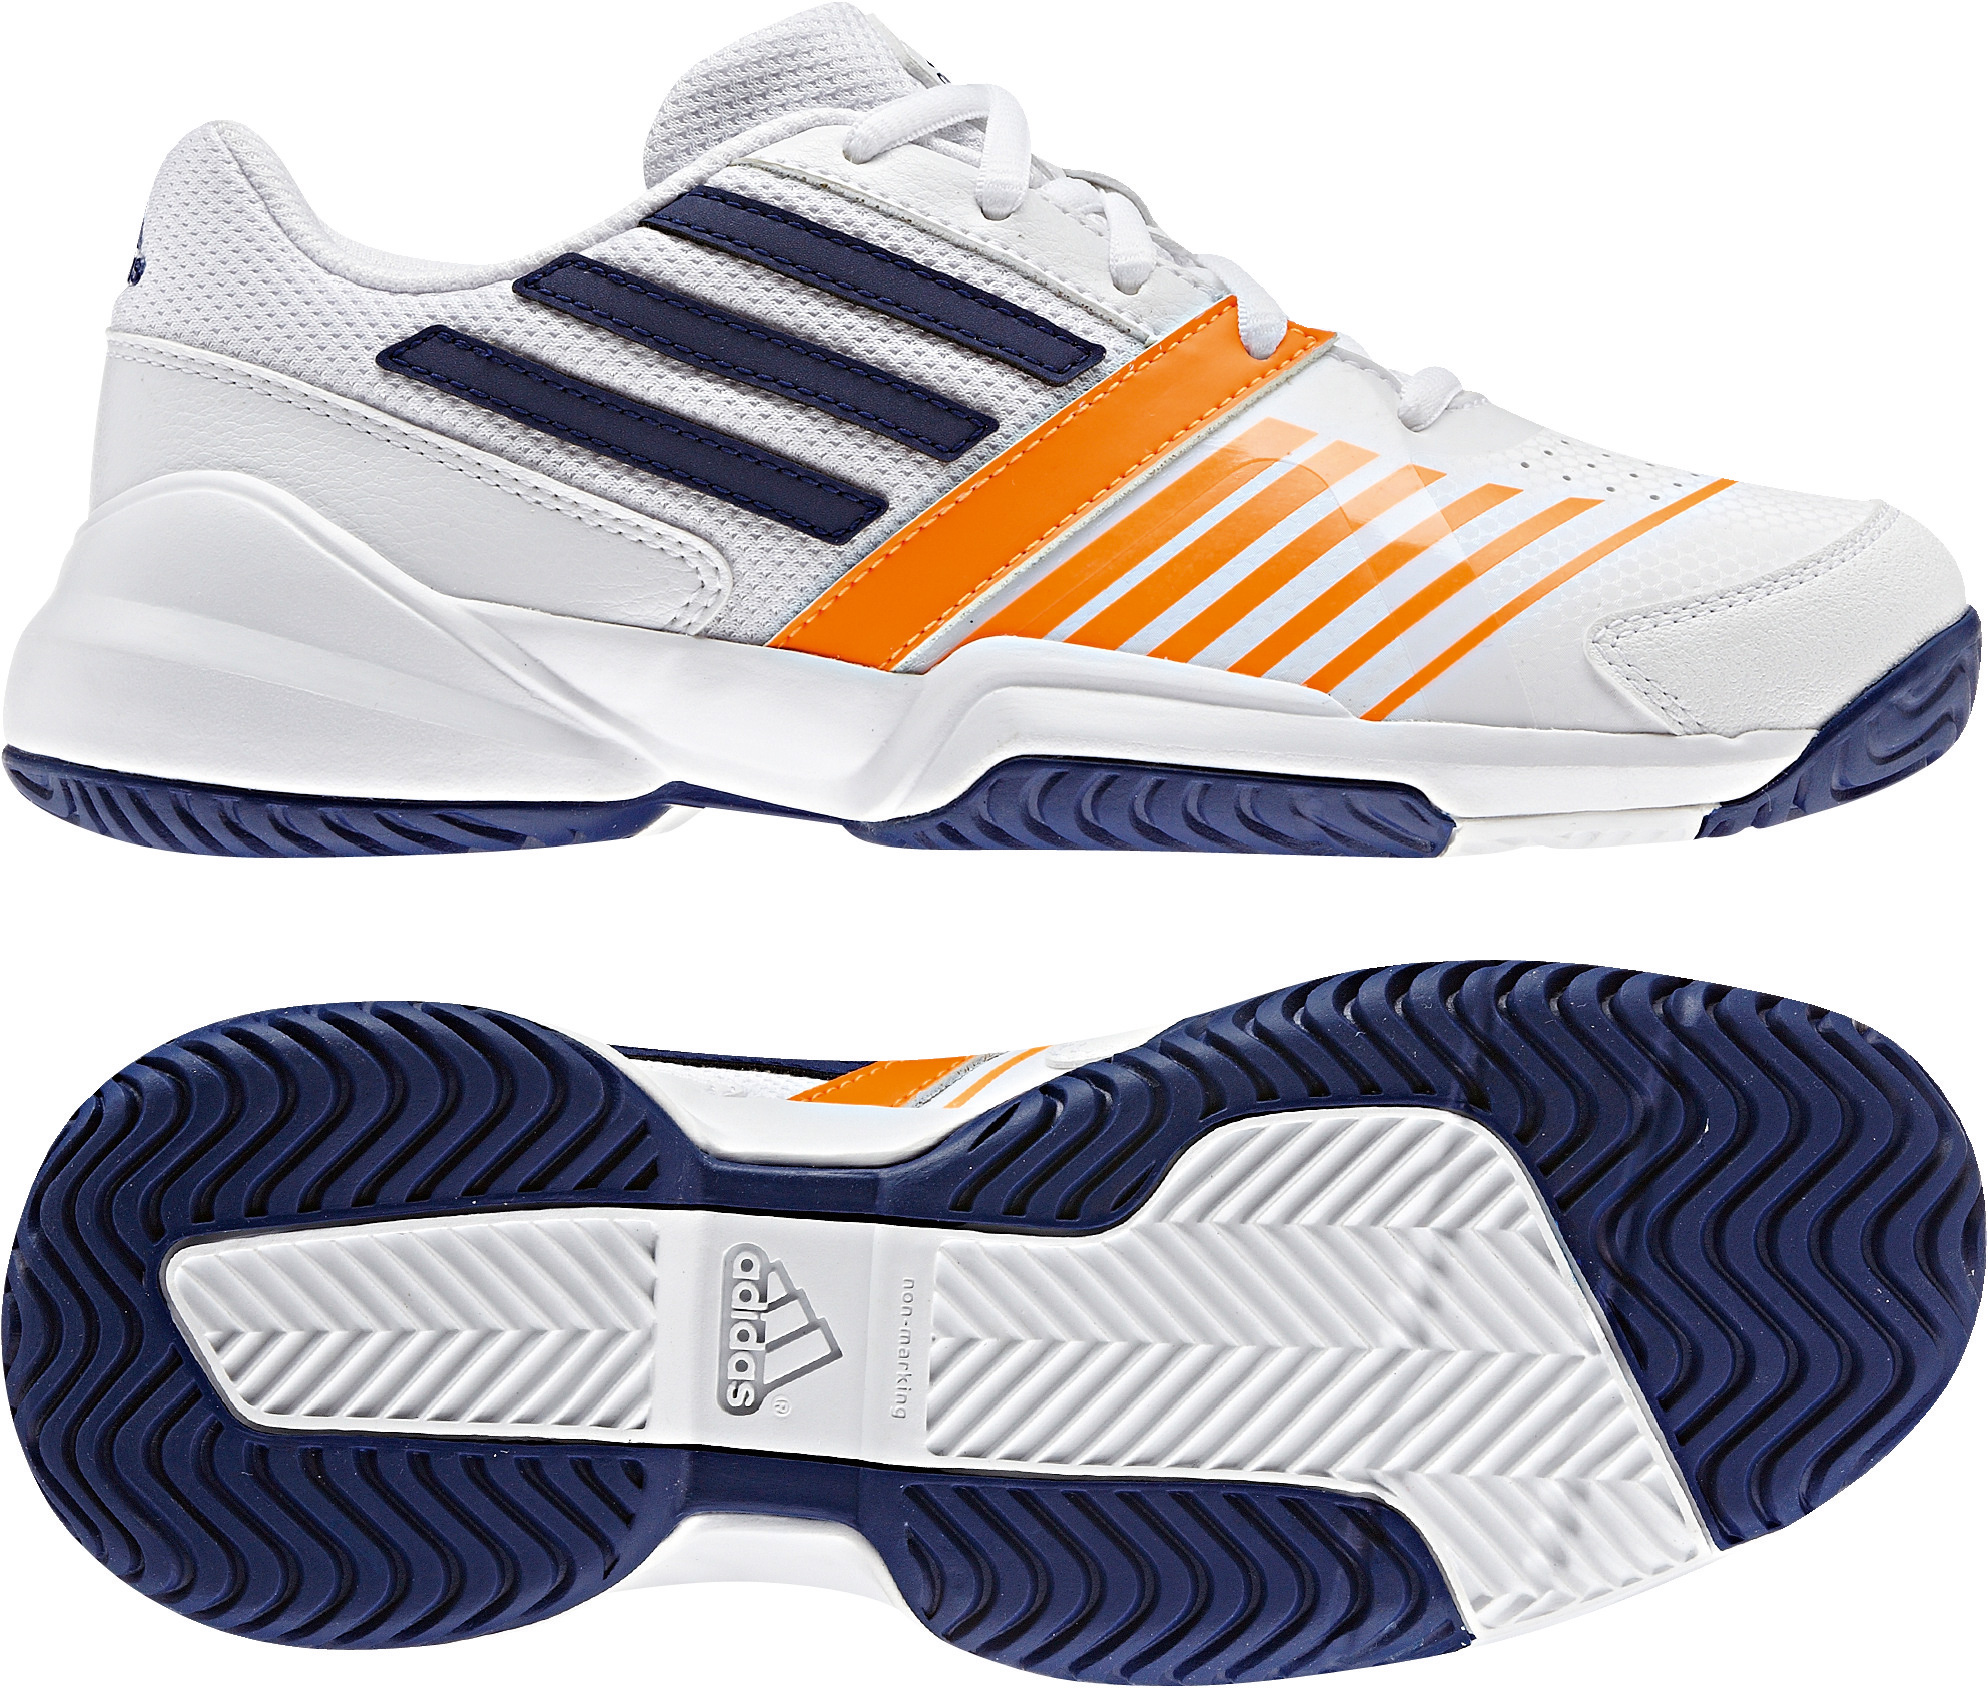 Kinder Tennisschuh Galaxy Elite 3